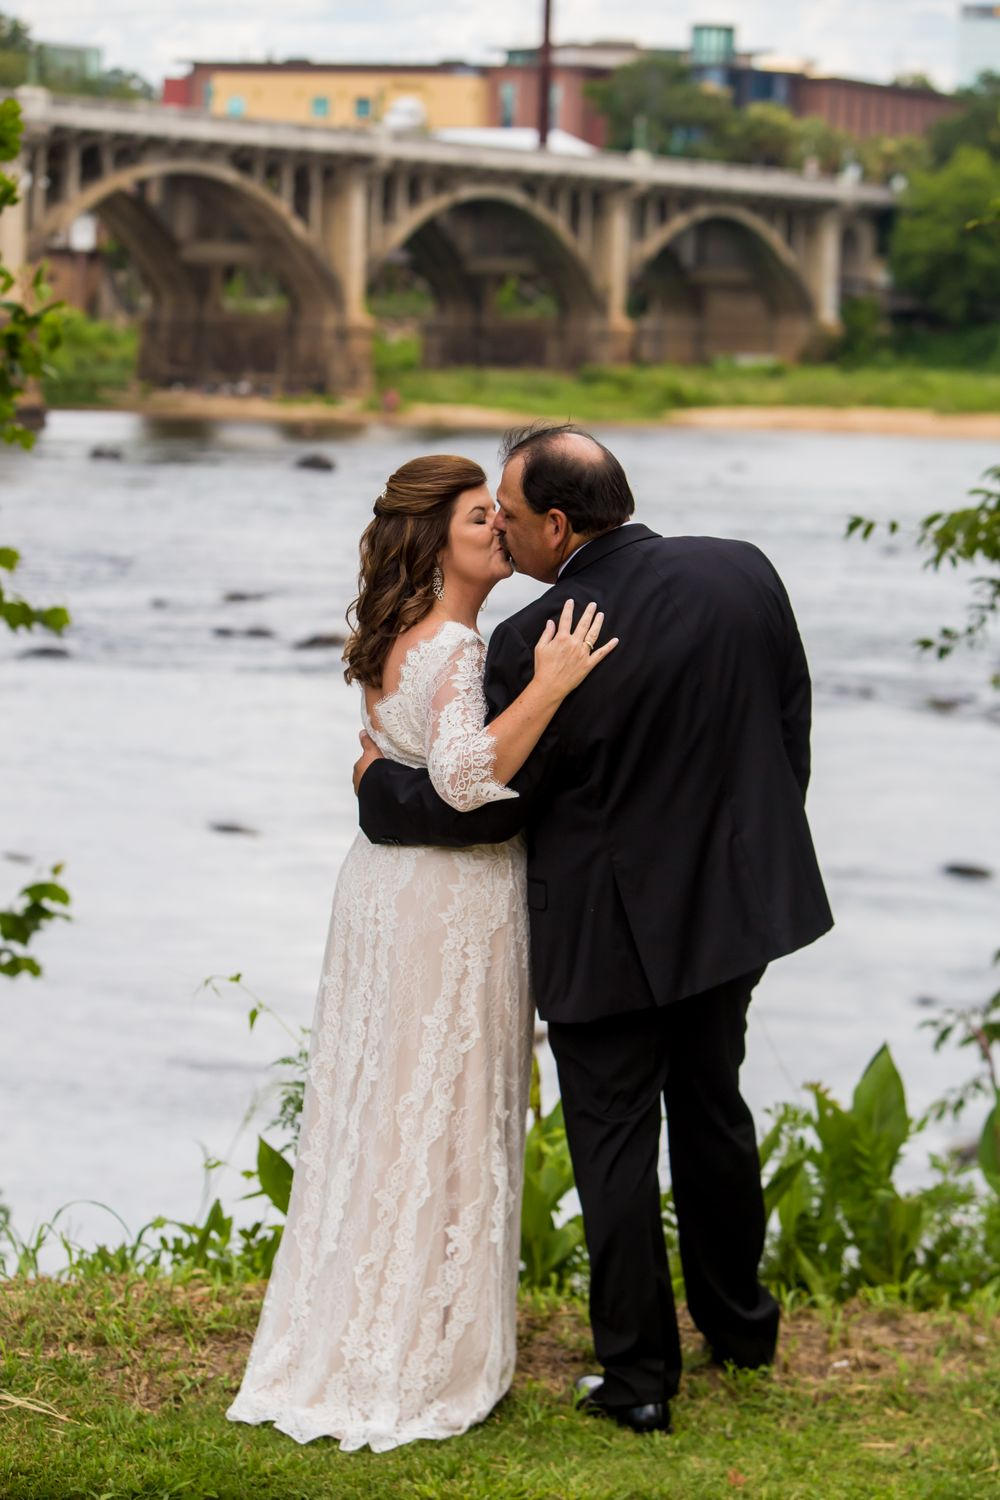 Bride & groom kiss w/ the Congaree River and Gervais St. Bridge behind them following their wedding at Stone River